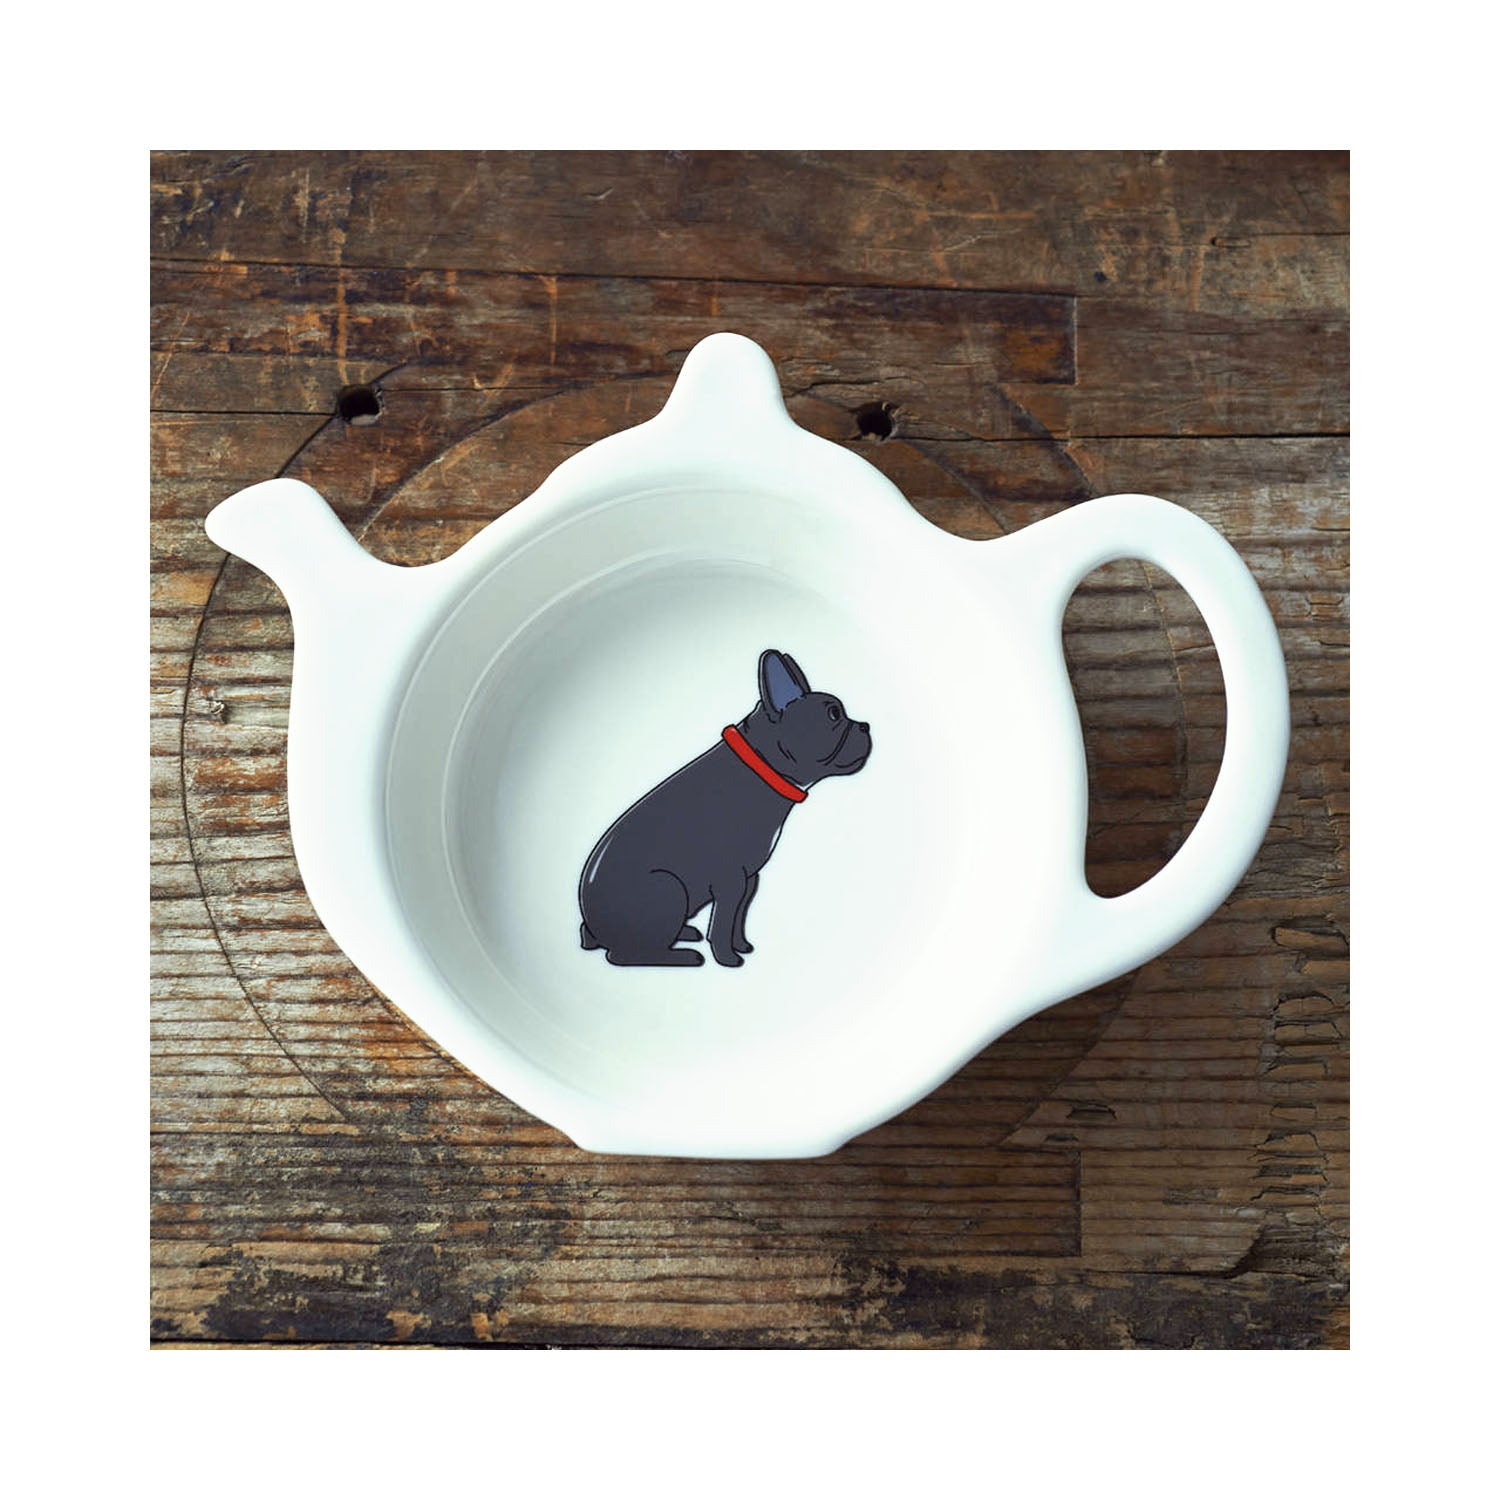 Dog Lover Gifts available at Dog Krazy Gifts - Freddie The French Bulldog Teabag Dish - part of the Sweet William range available from Dog Krazy Gifts